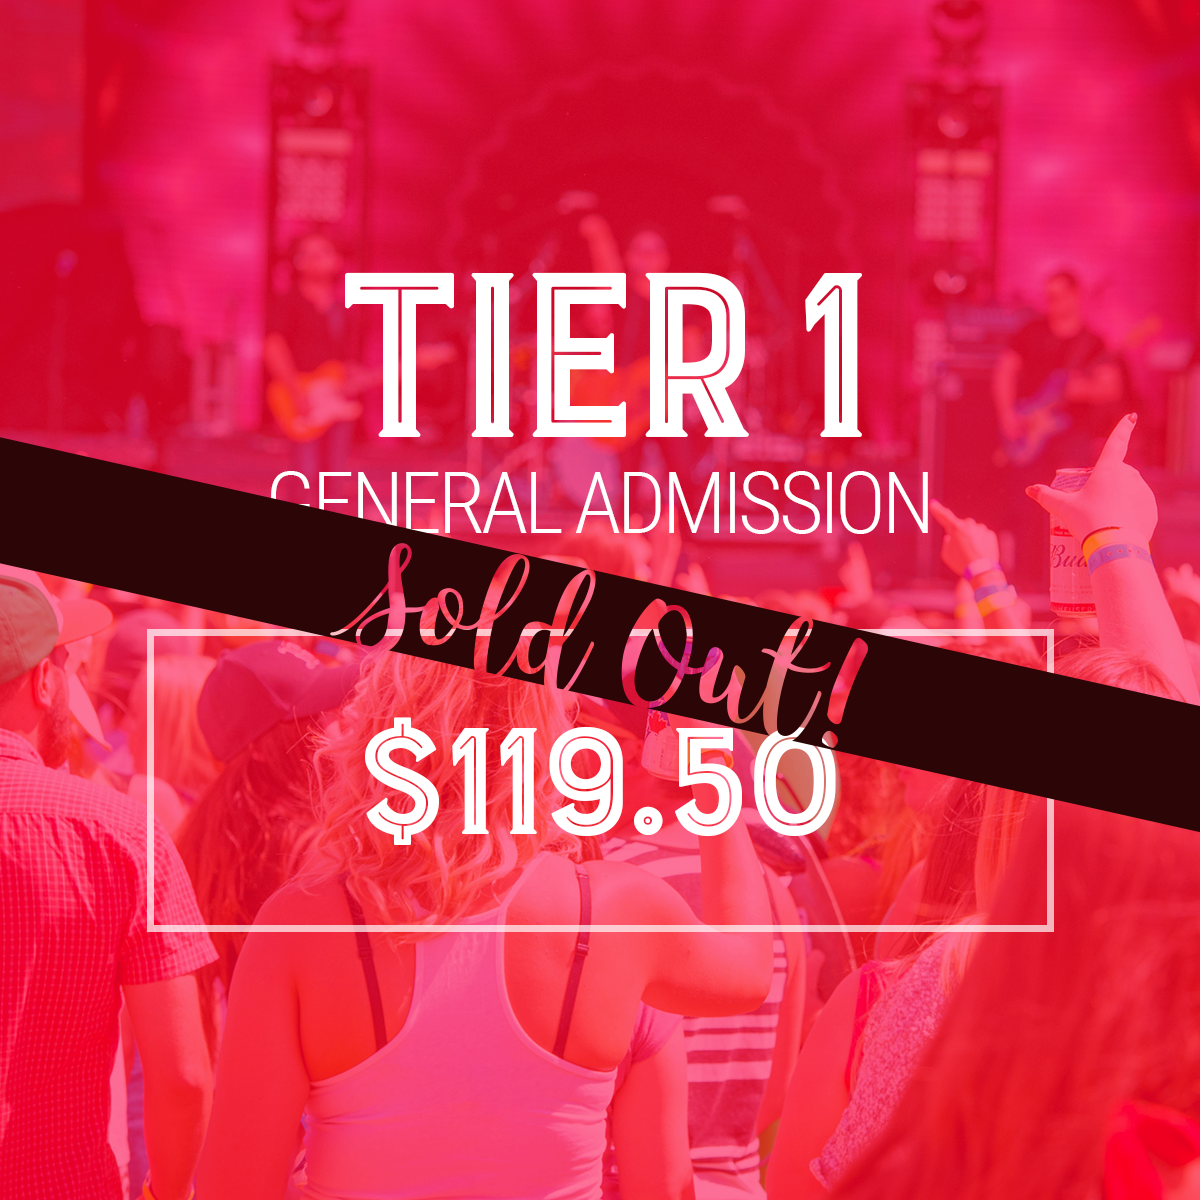 Tier 2 General Admission